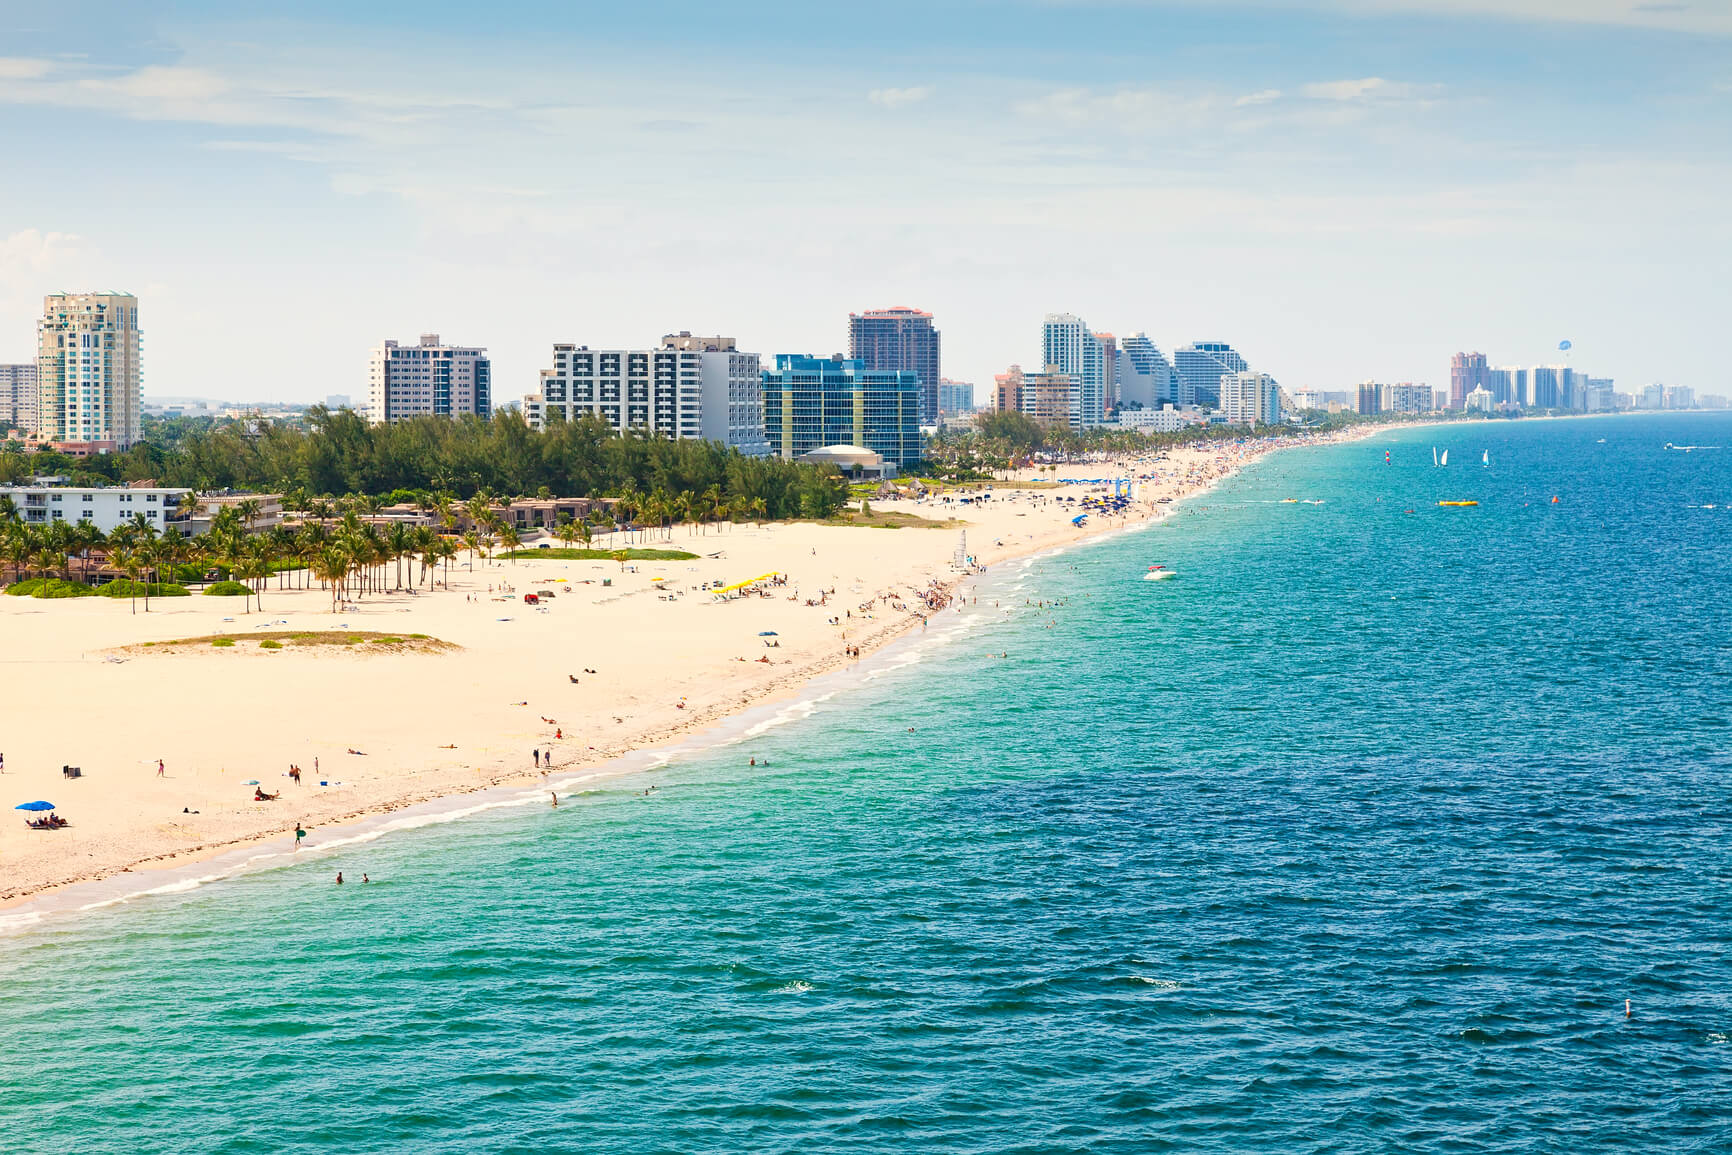 **PRICE DROP** Non-stop from Chicago to Fort Lauderdale (& vice versa) for only $50 roundtrip (Sep-Dec dates)